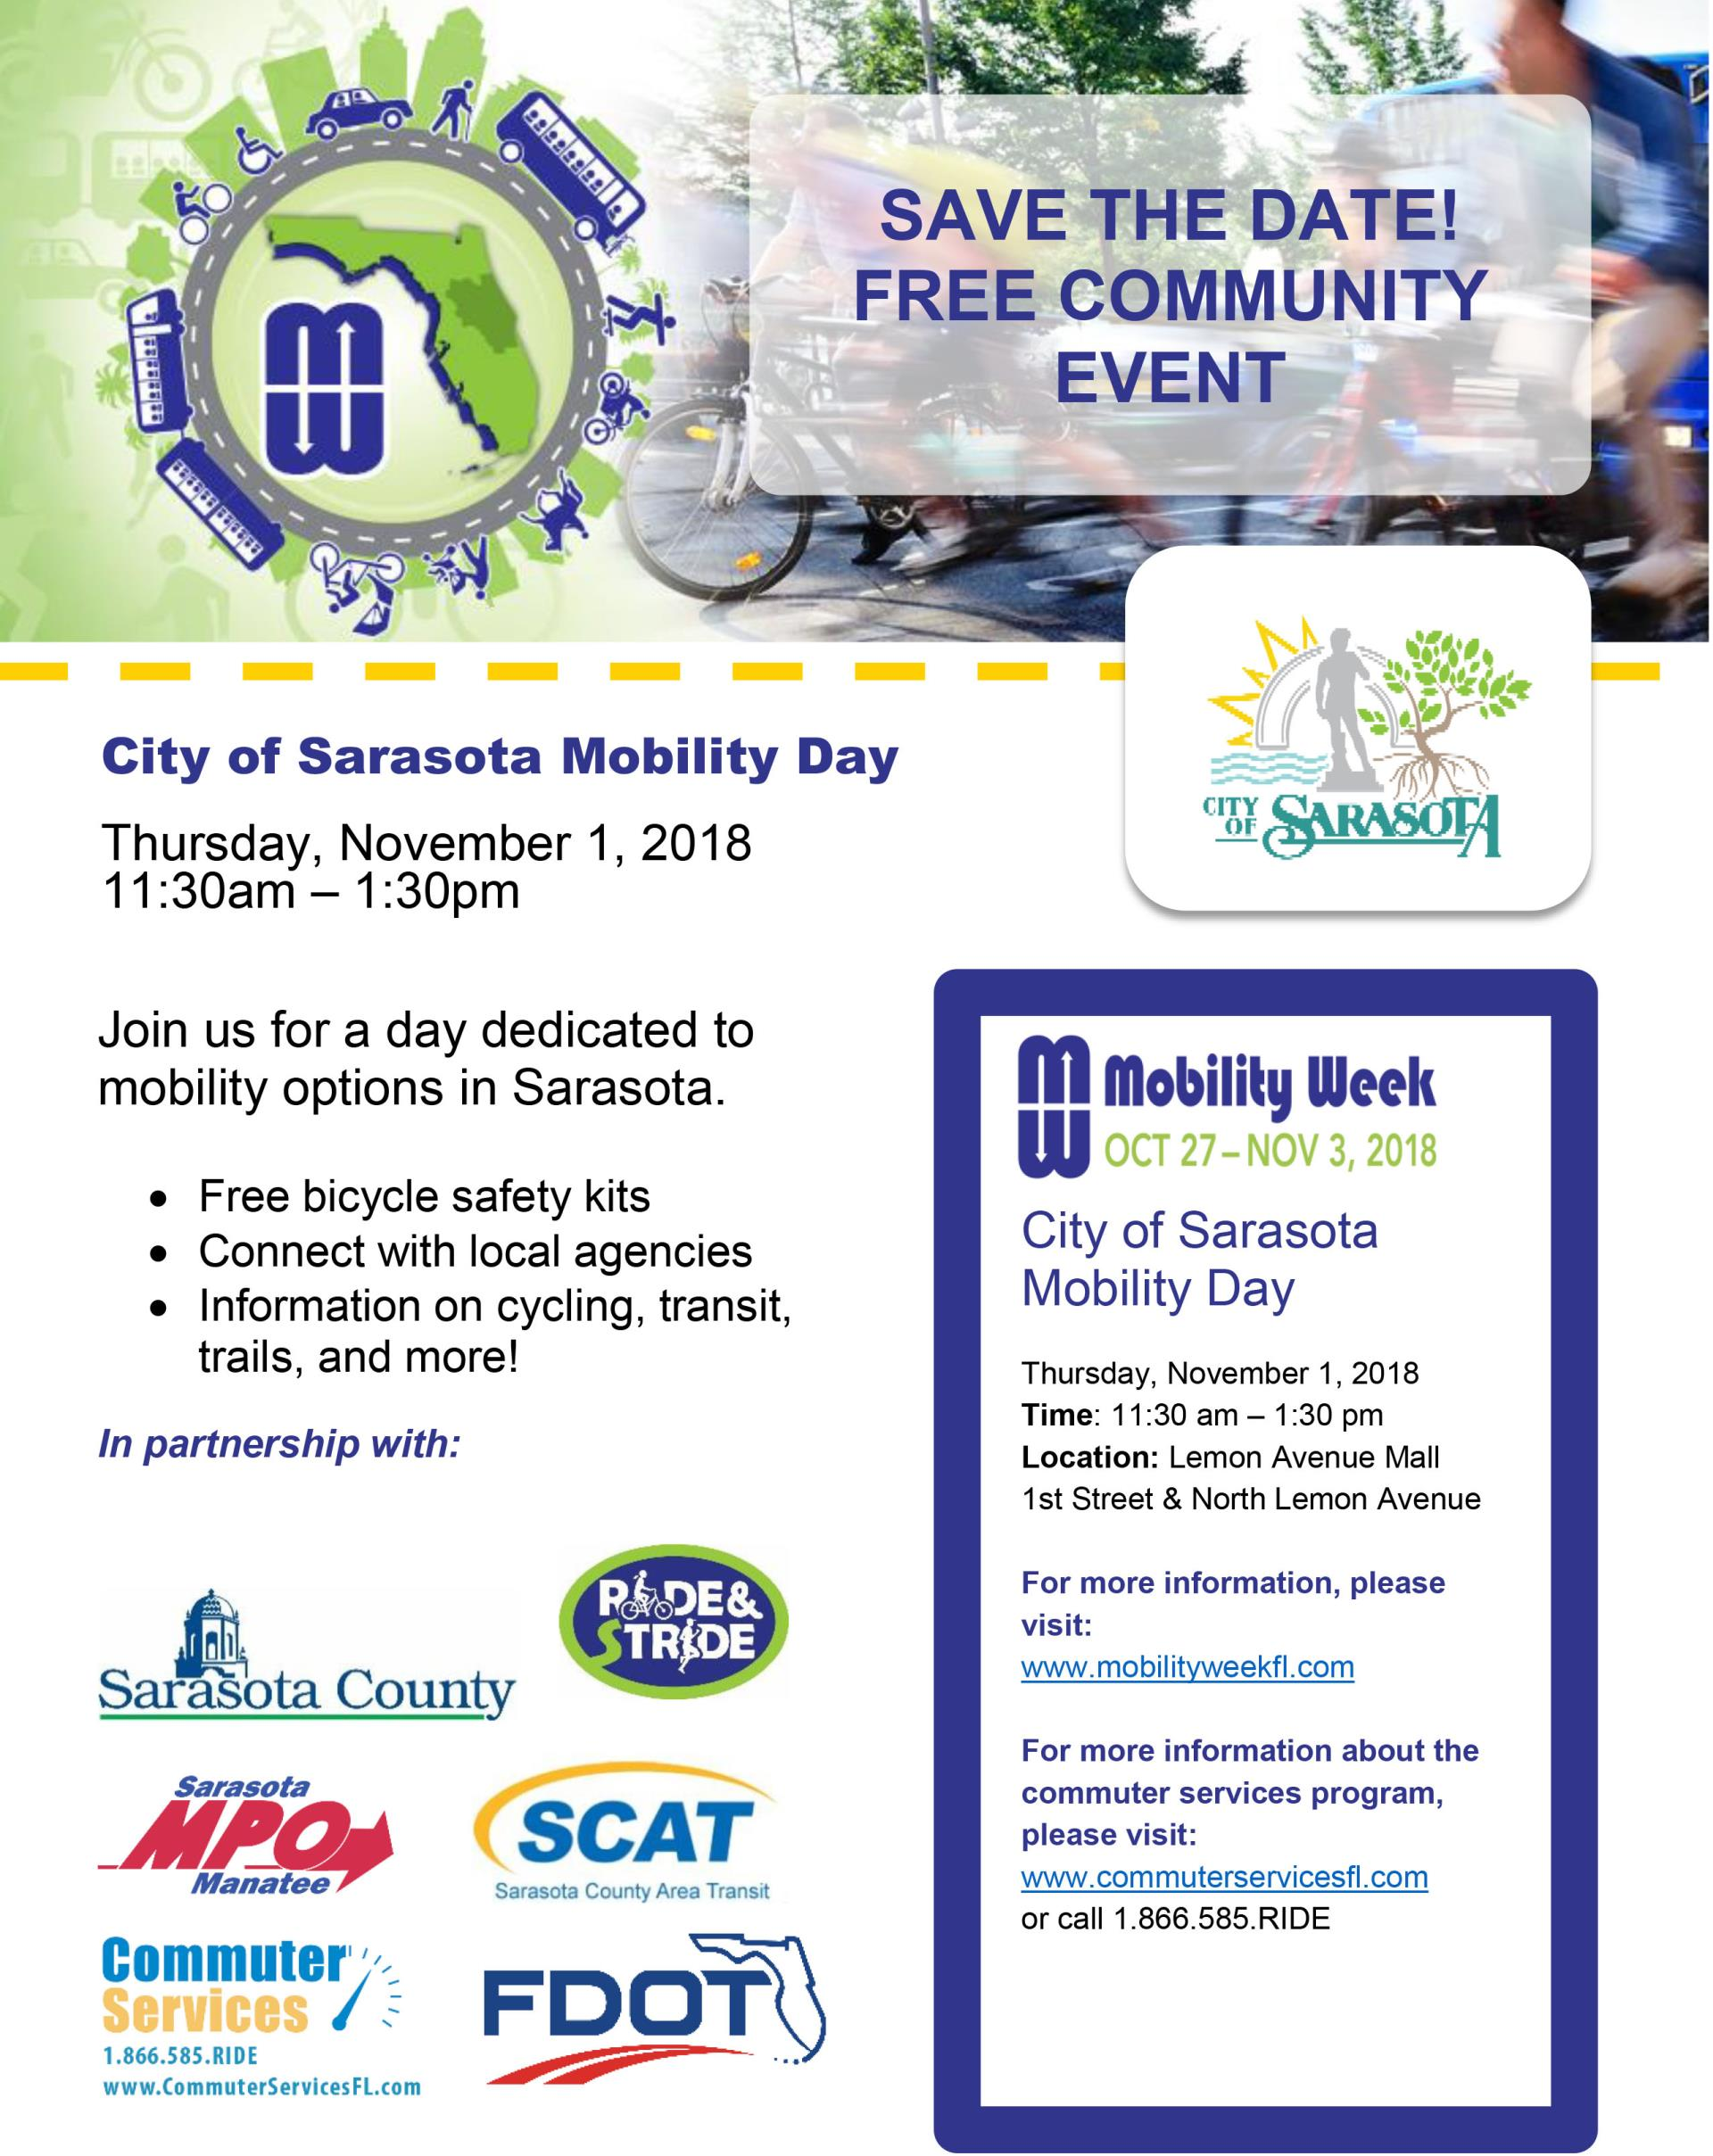 Mobility_Week_Flyer_Sarasota_Save the Date revas3